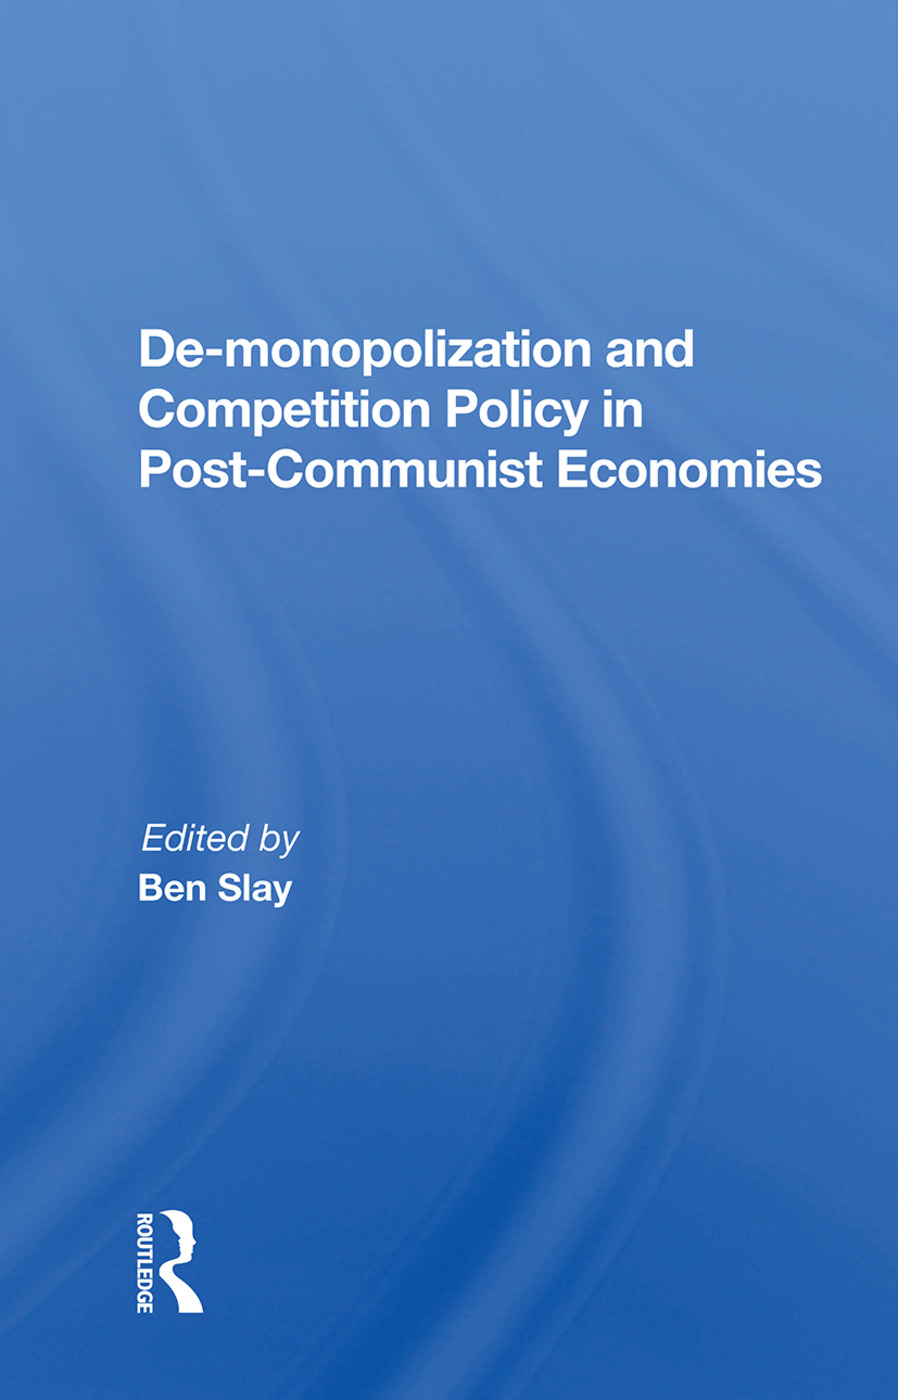 De-monopolization and Competition Policy in Post-Communist Economies book cover